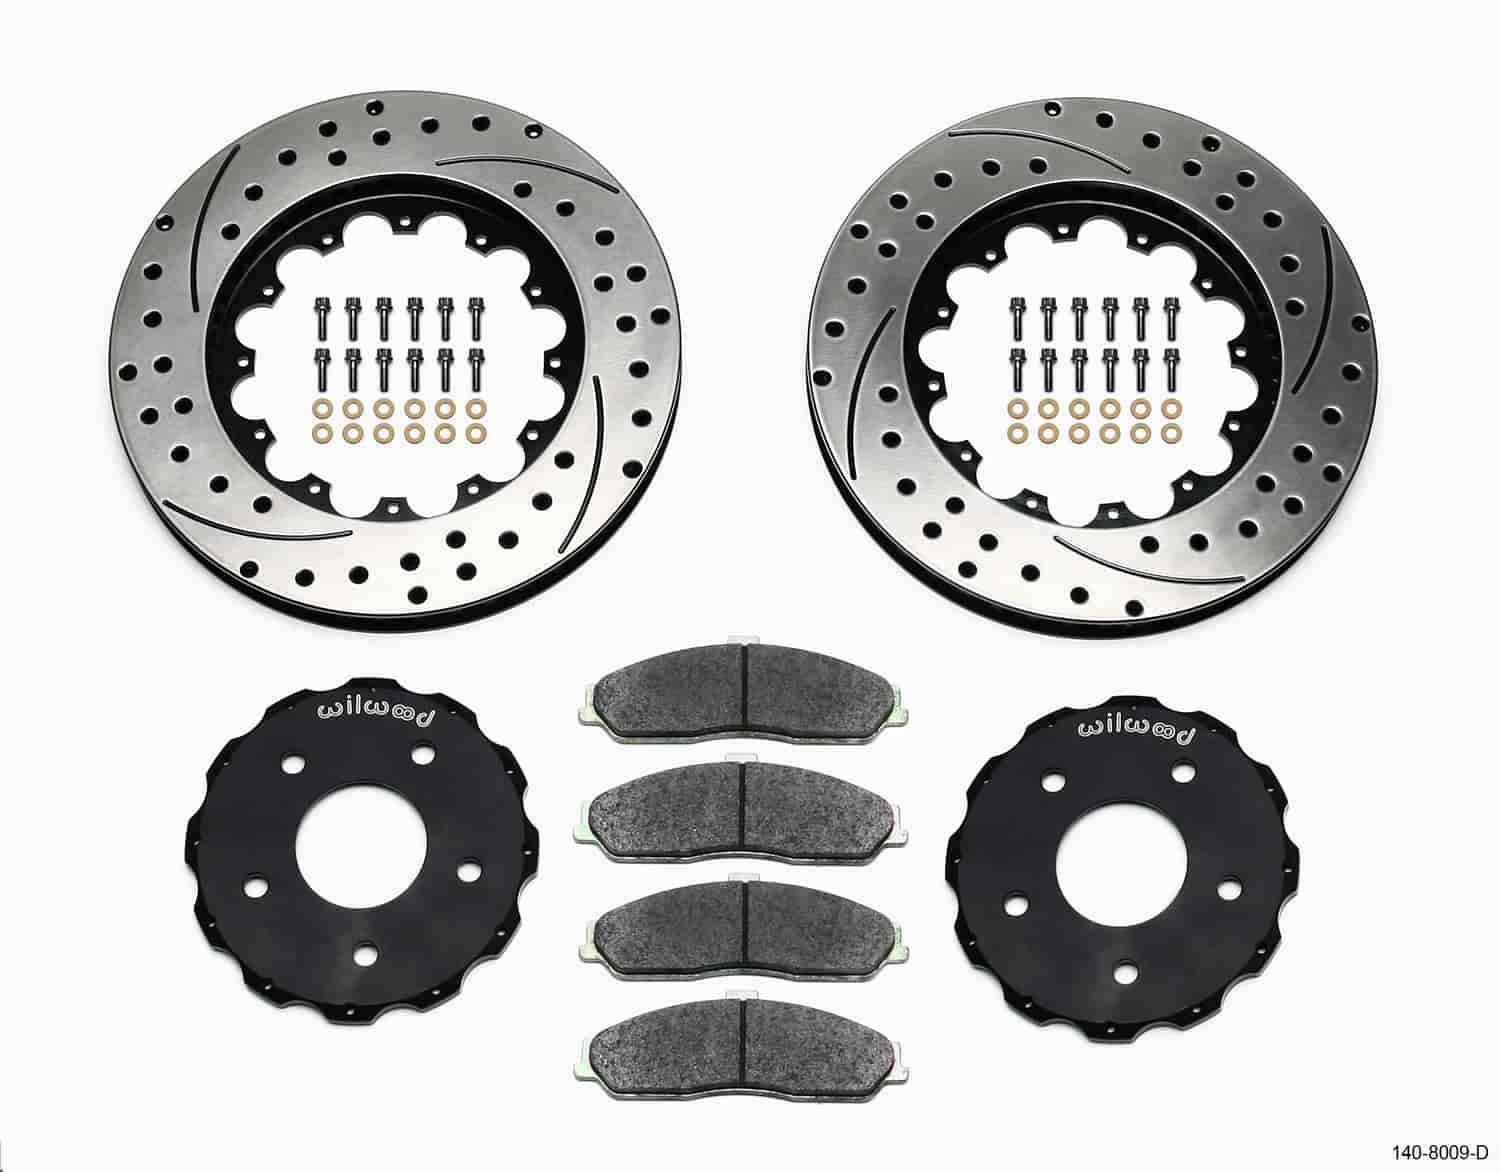 Wilwood 140-8313-D - Wilwood ProMatrix Brake Rotor Upgrade Kits